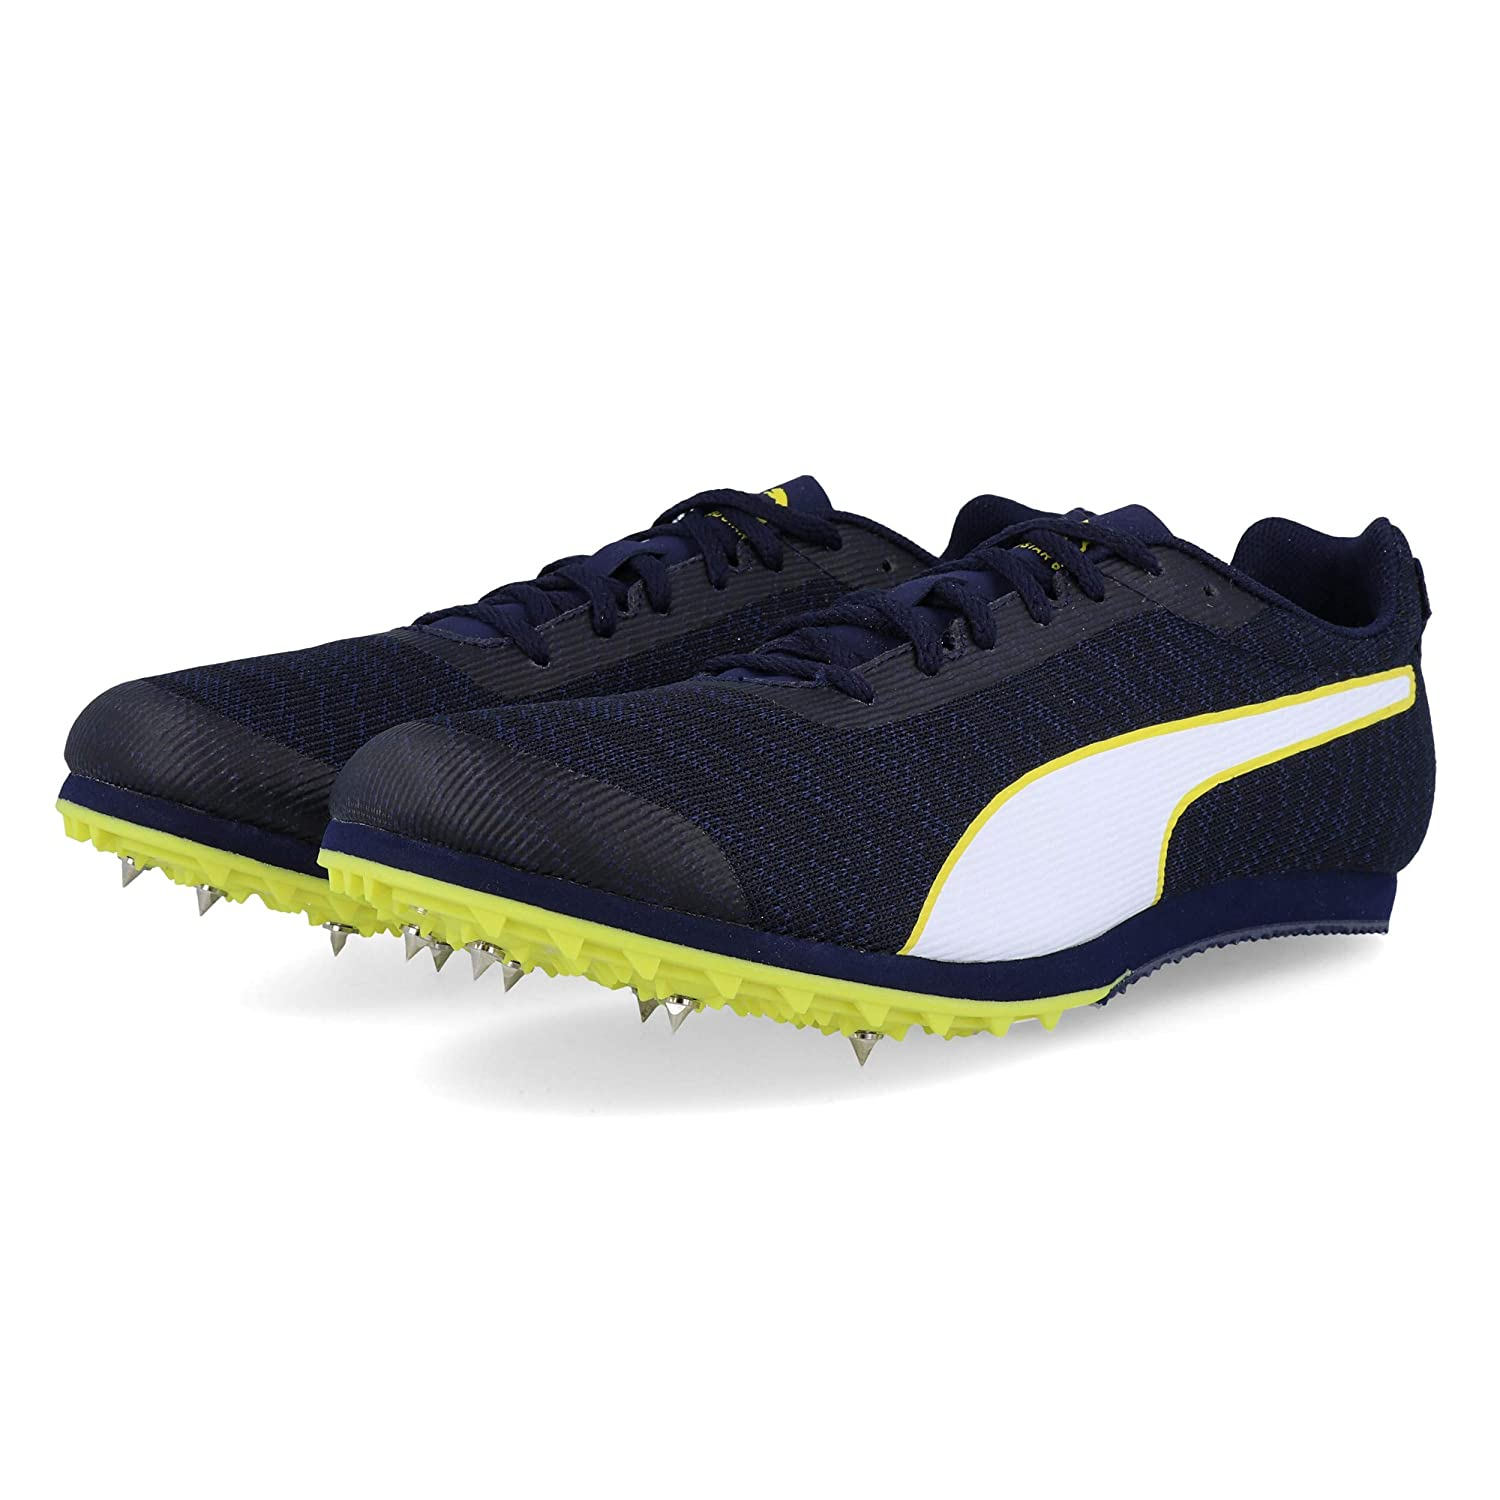 Puma Evospeed Star 6 Junior, Zapatillas de Atletismo Unisex Niños: Amazon.es: Zapatos y complementos